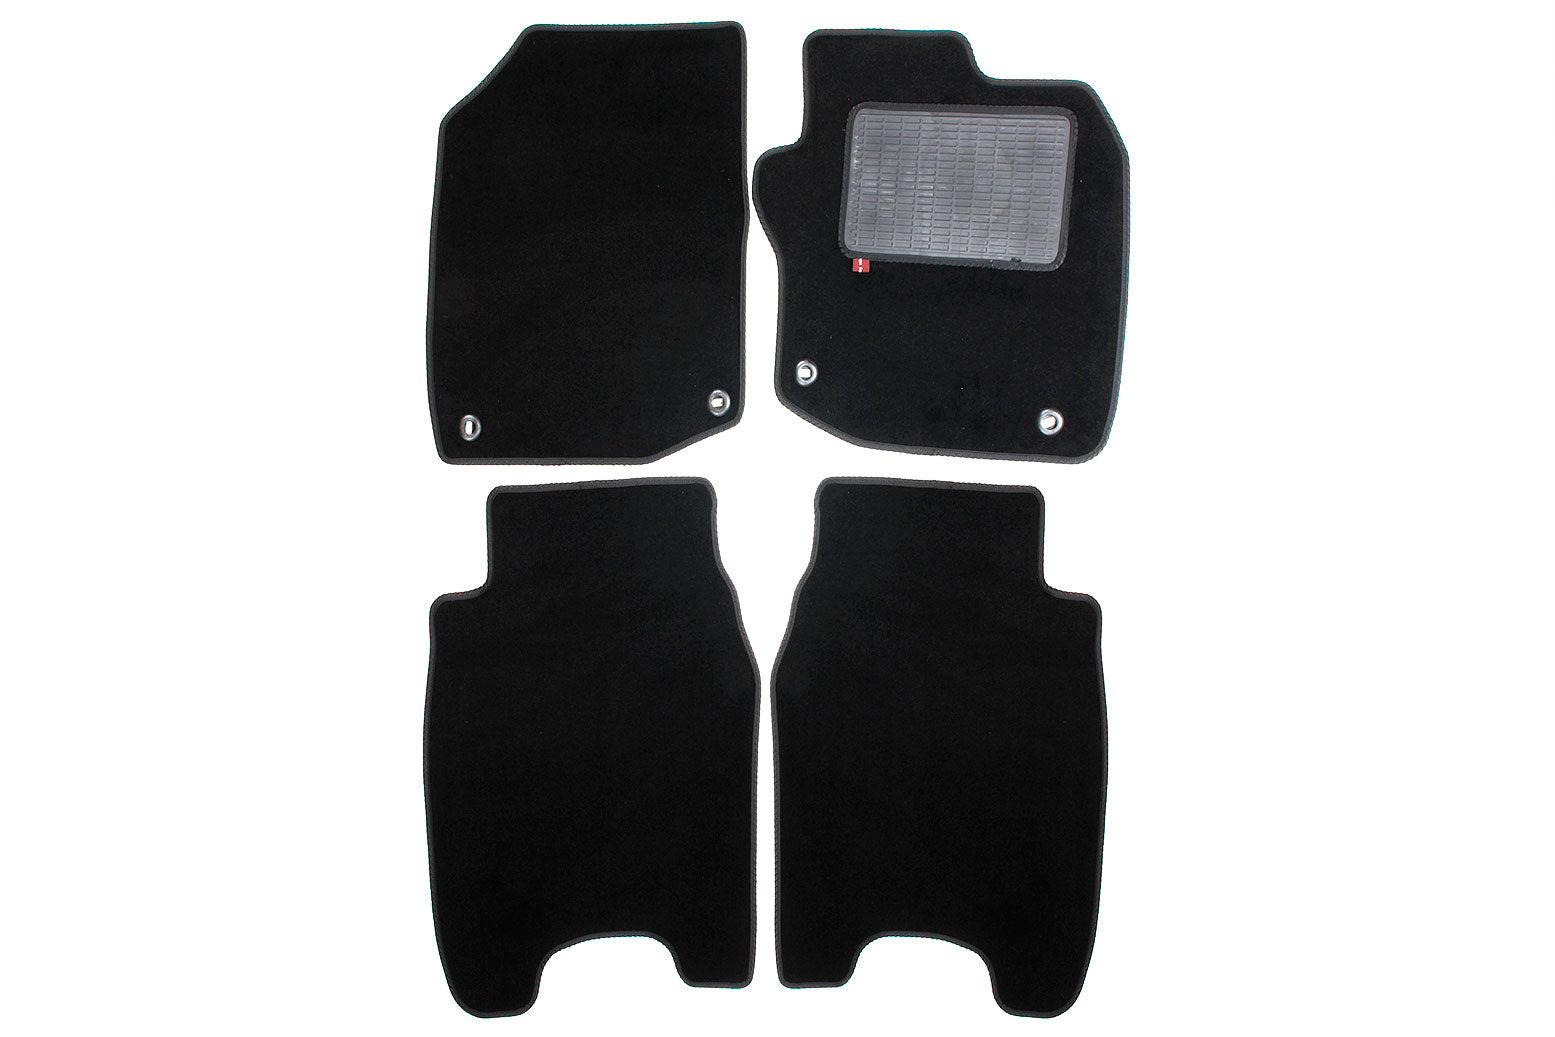 Honda Civic diesel 2013 - Over mat set with fixings